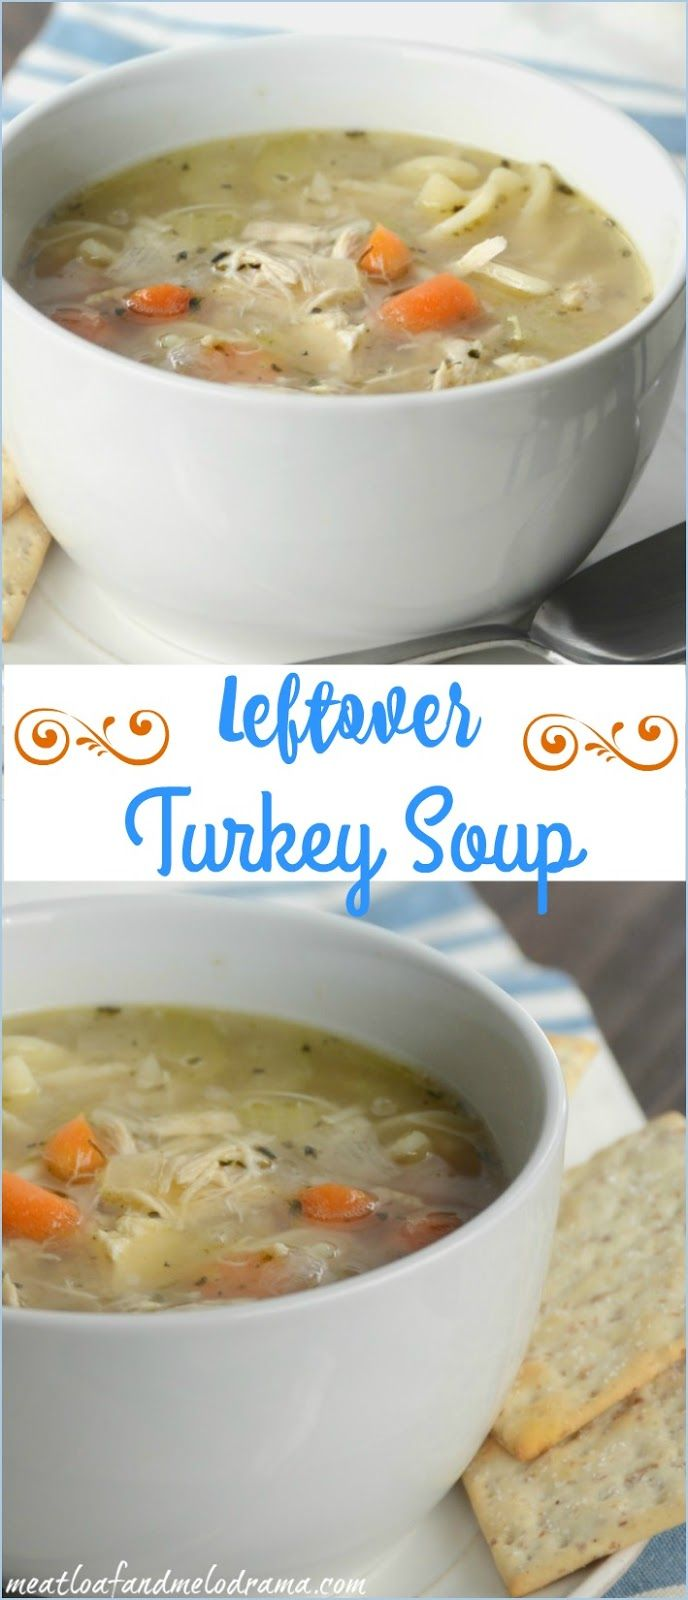 Easy Turkey Soup - Meatloaf and Melodrama